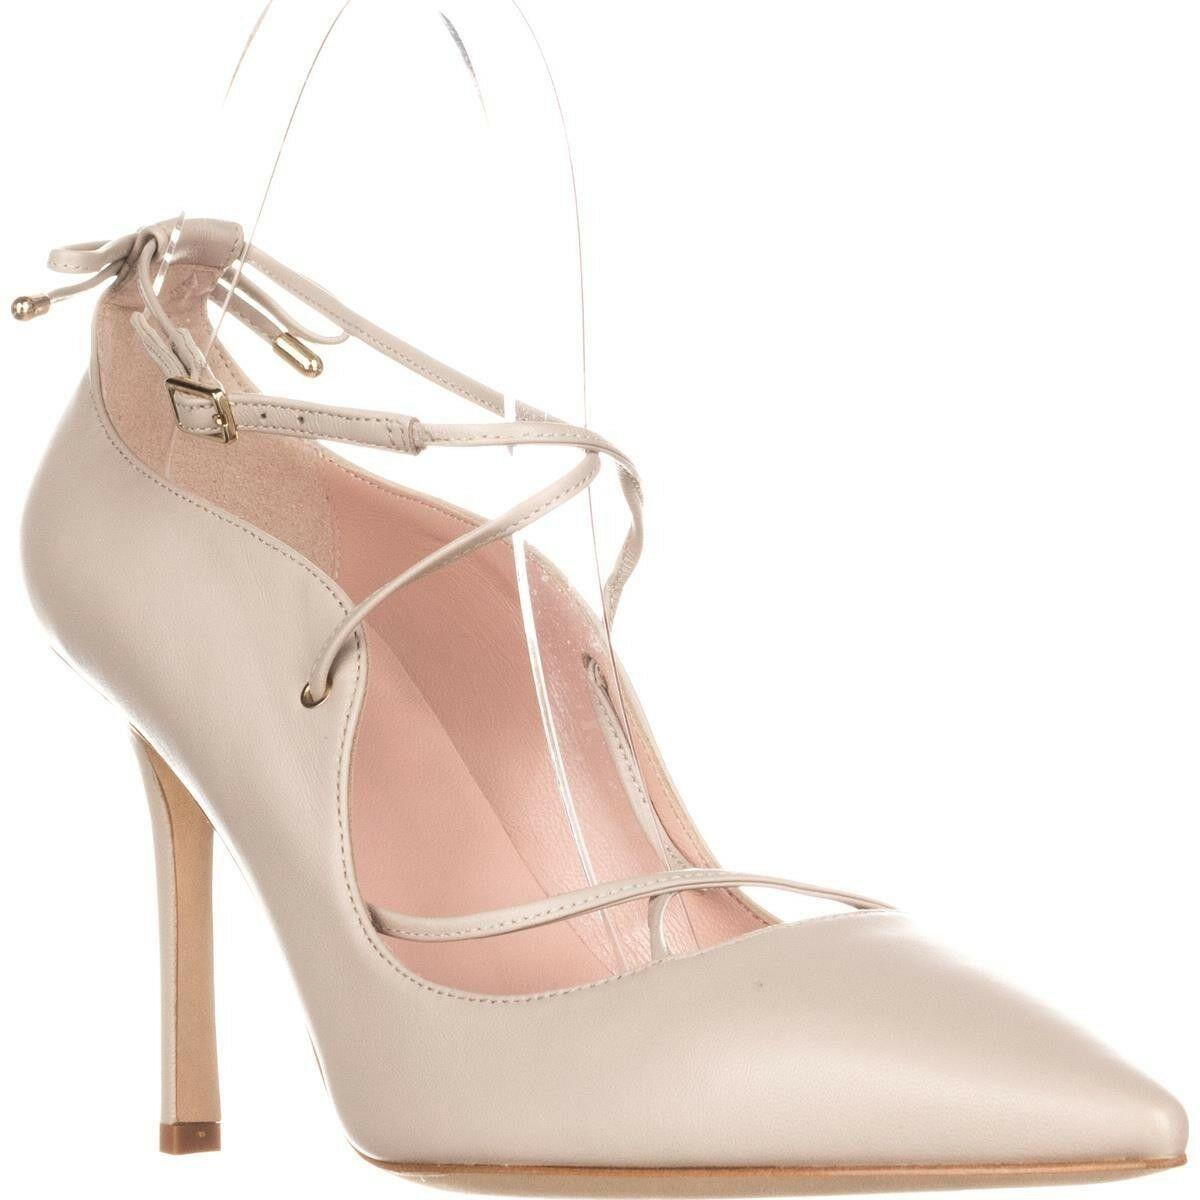 97bf8ed68166 Kate Spade Priscilla Lace-Up Heels Pale Taupe Pumps Pointy Toe Heel Shoe 7.5